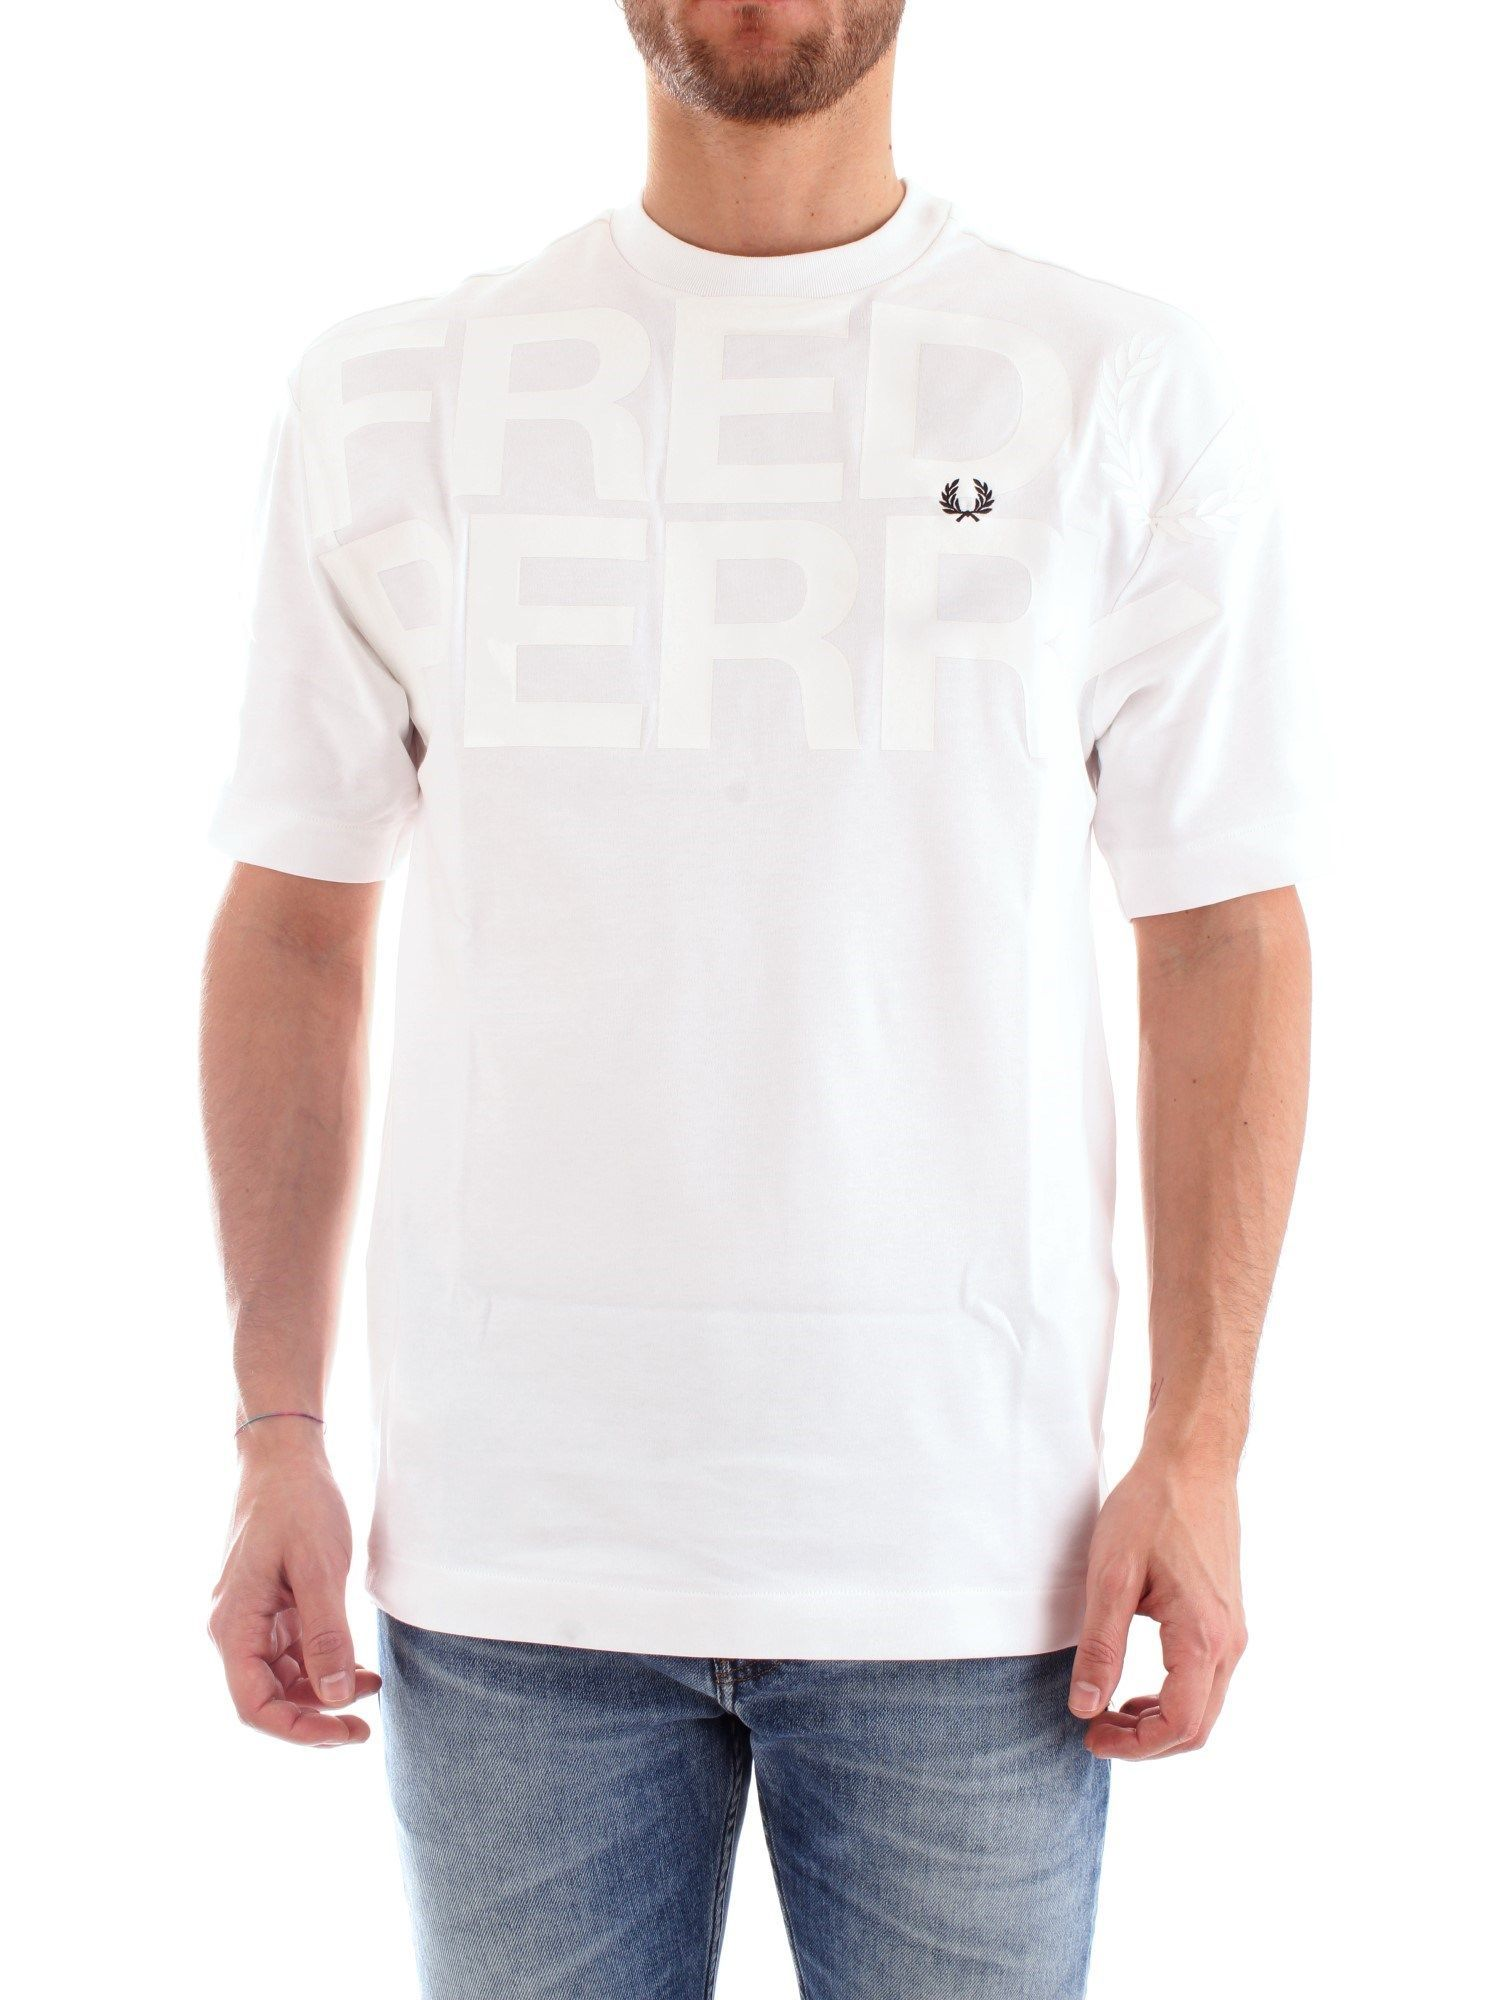 FRED PERRY MEN'S FPM651630100 WHITE COTTON T-SHIRT